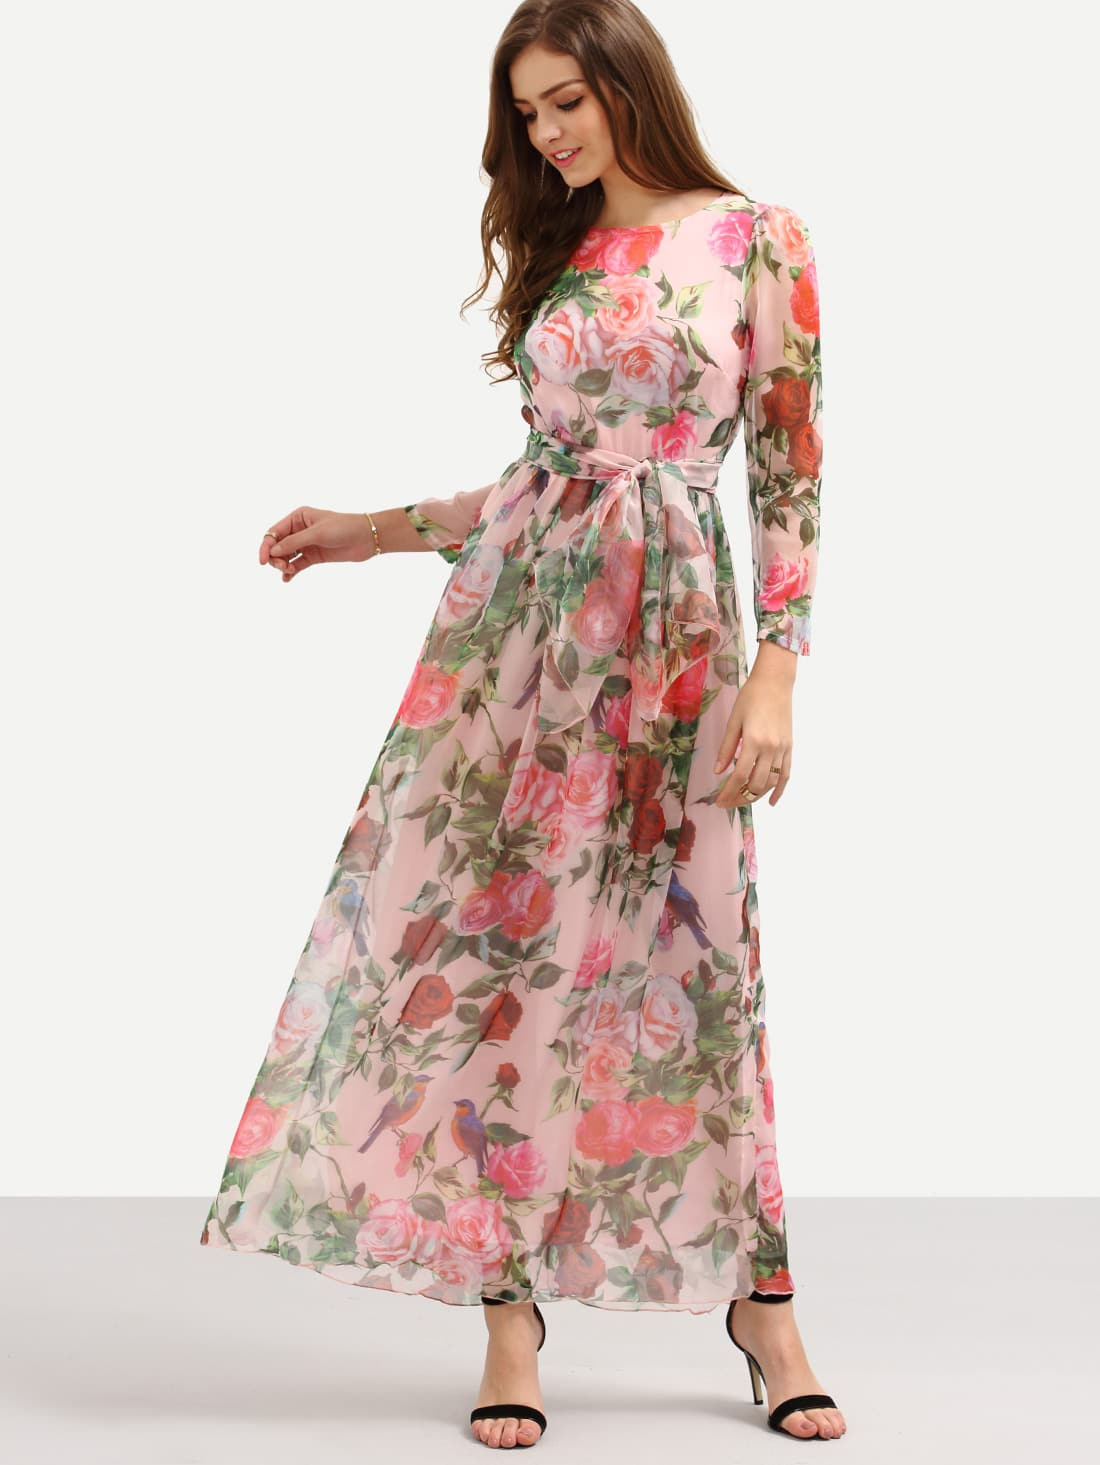 Self-Tie Rose Print Chiffon Romantic Dress small rose tie